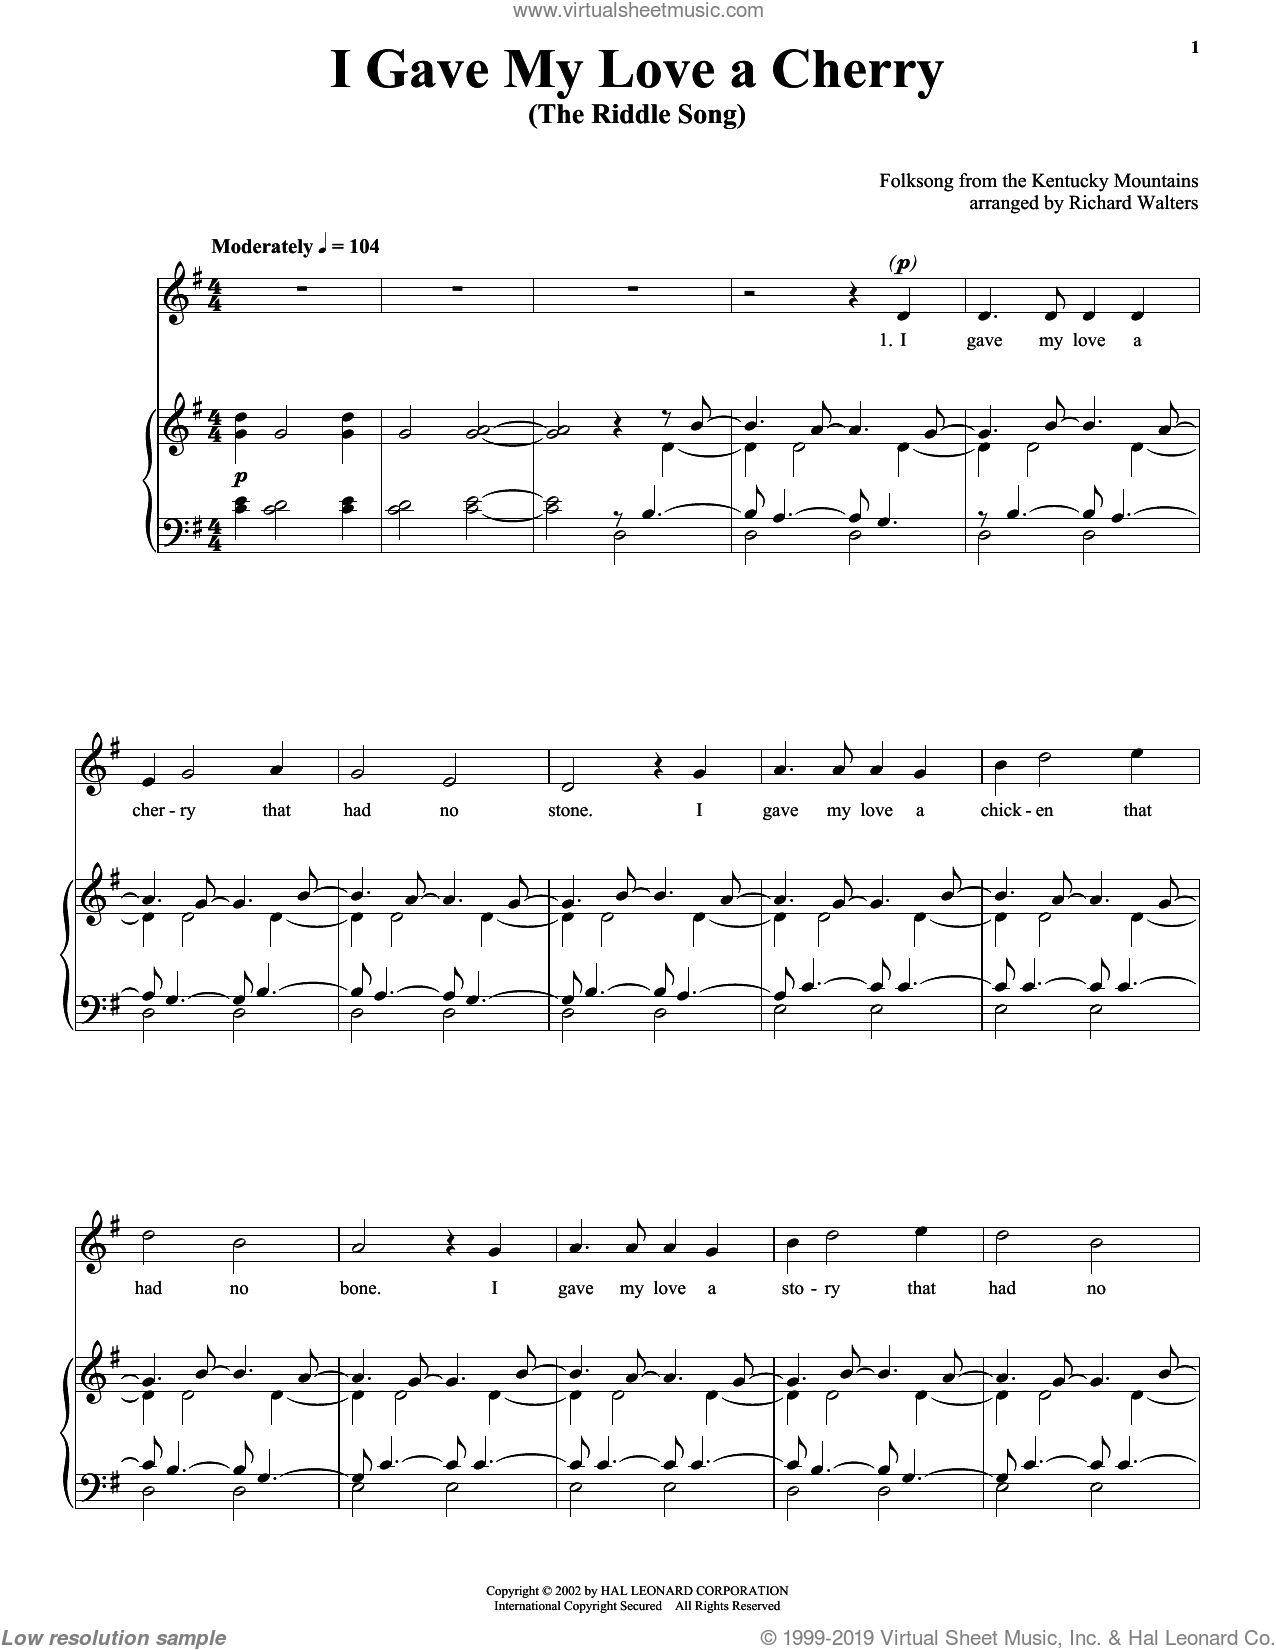 I Gave My Love A Cherry (The Riddle Song) sheet music for voice, piano or guitar, intermediate skill level